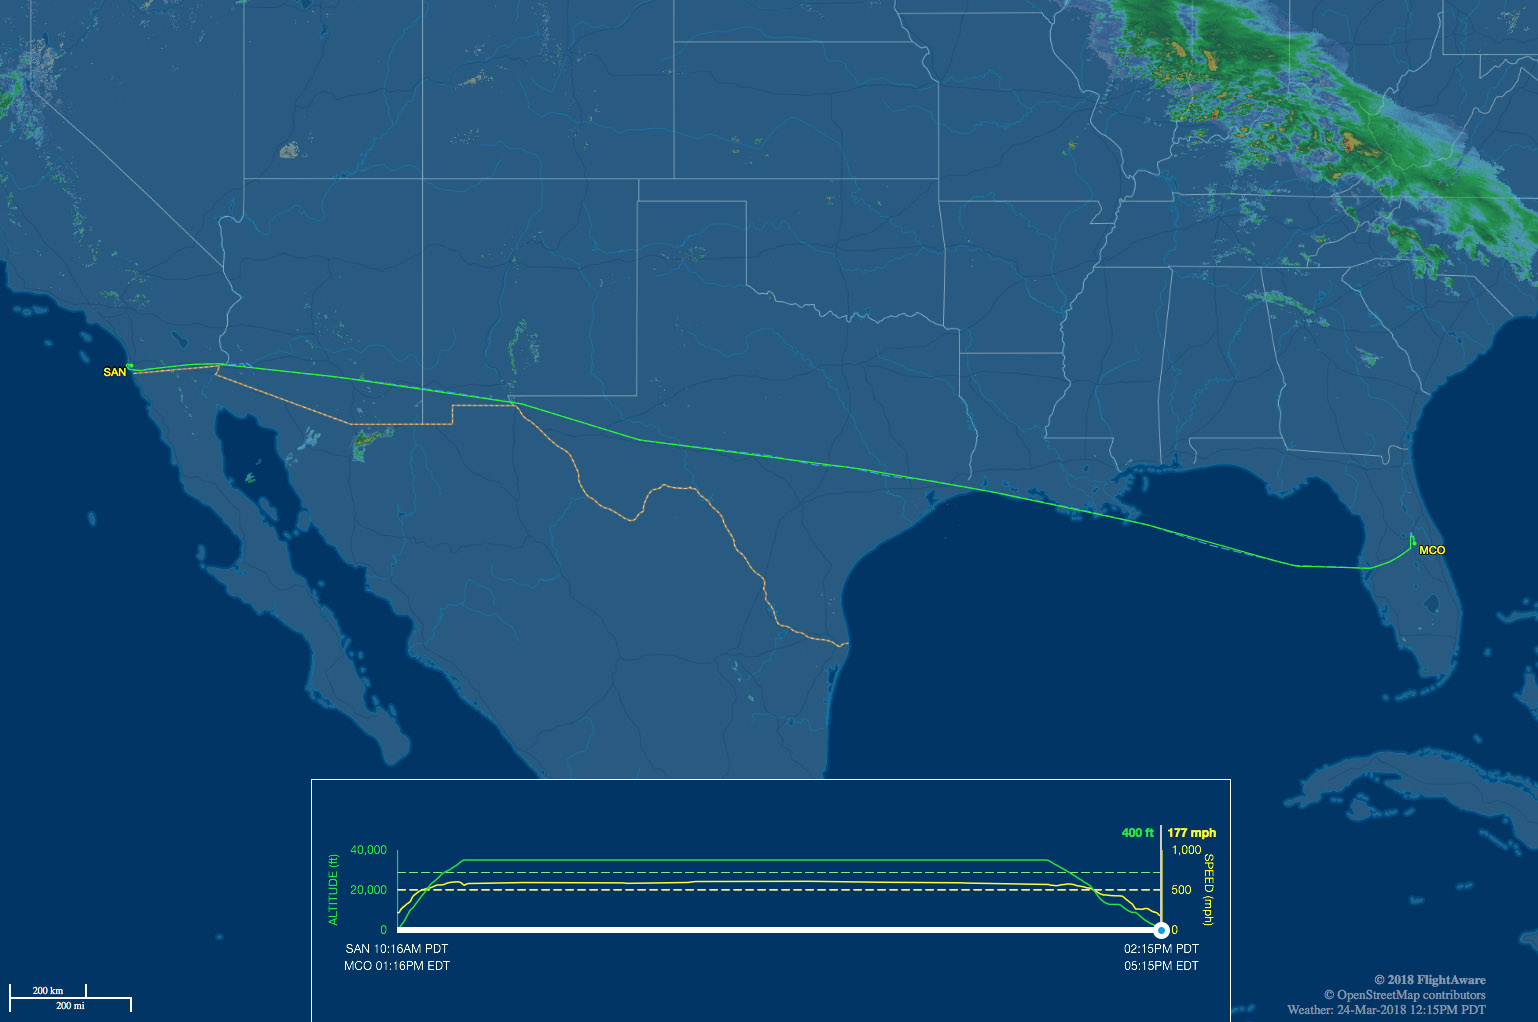 Our route from SAN to MCO